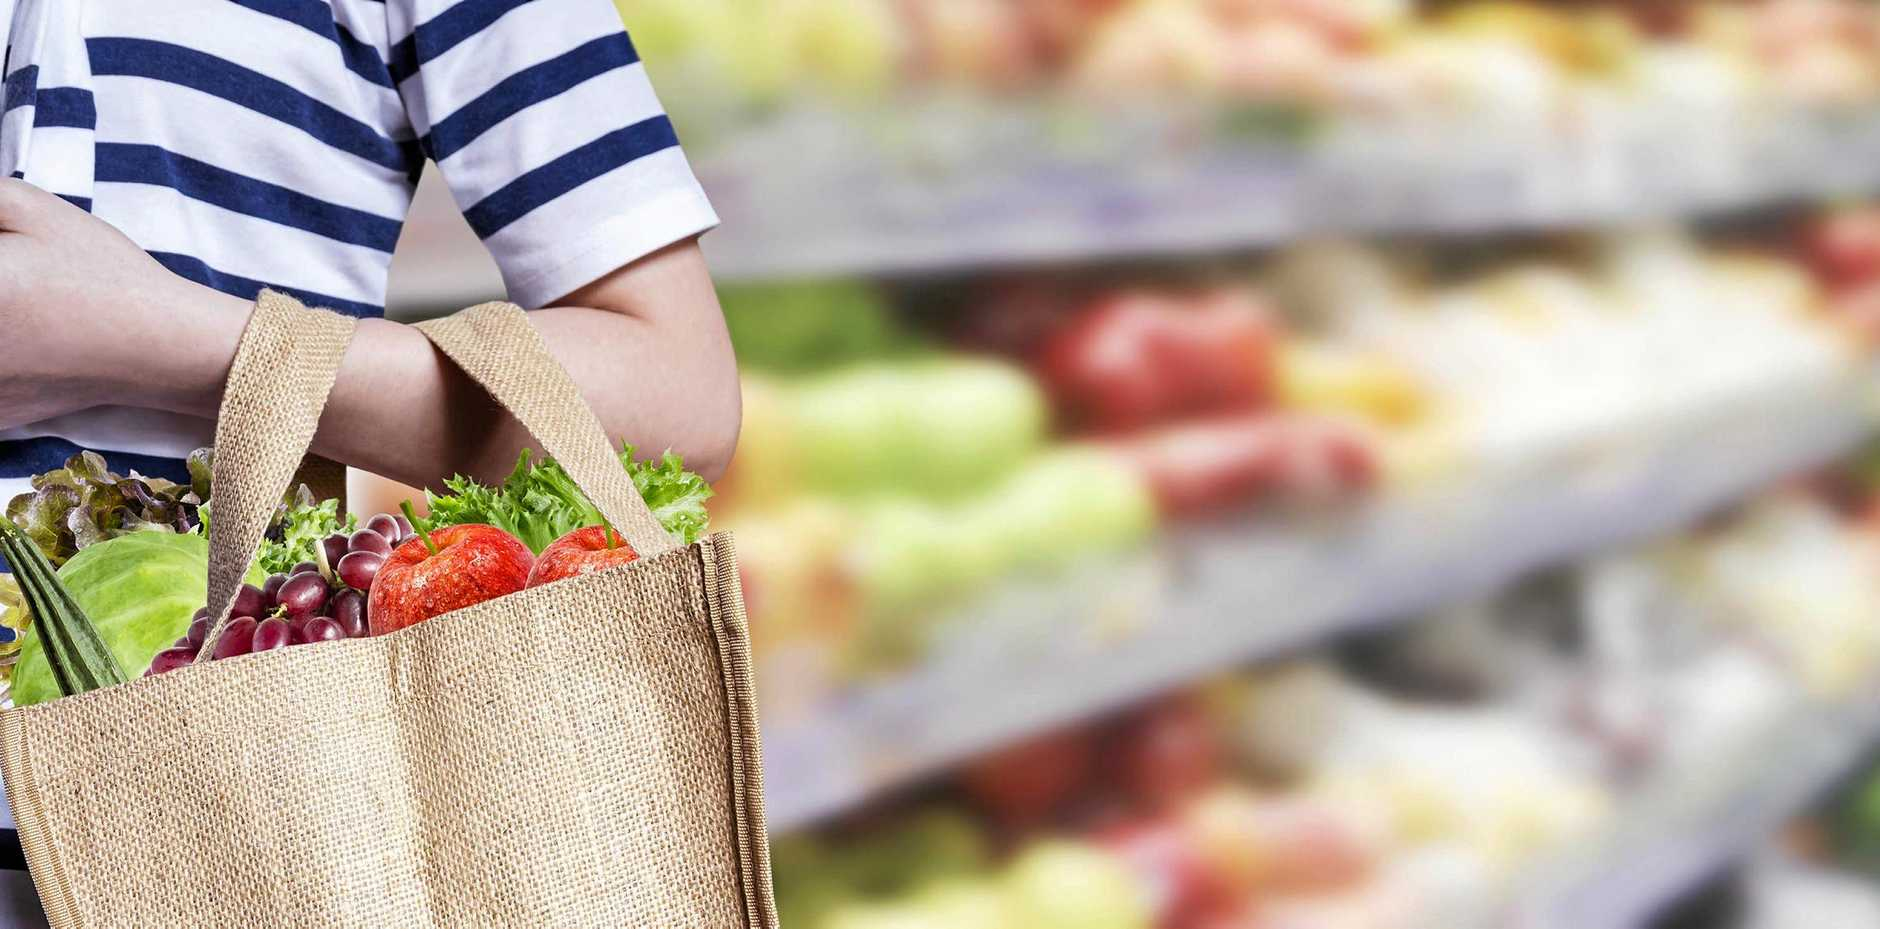 Alternatives to plastic shopping bags include cardboard boxes and reusable shopping bags.